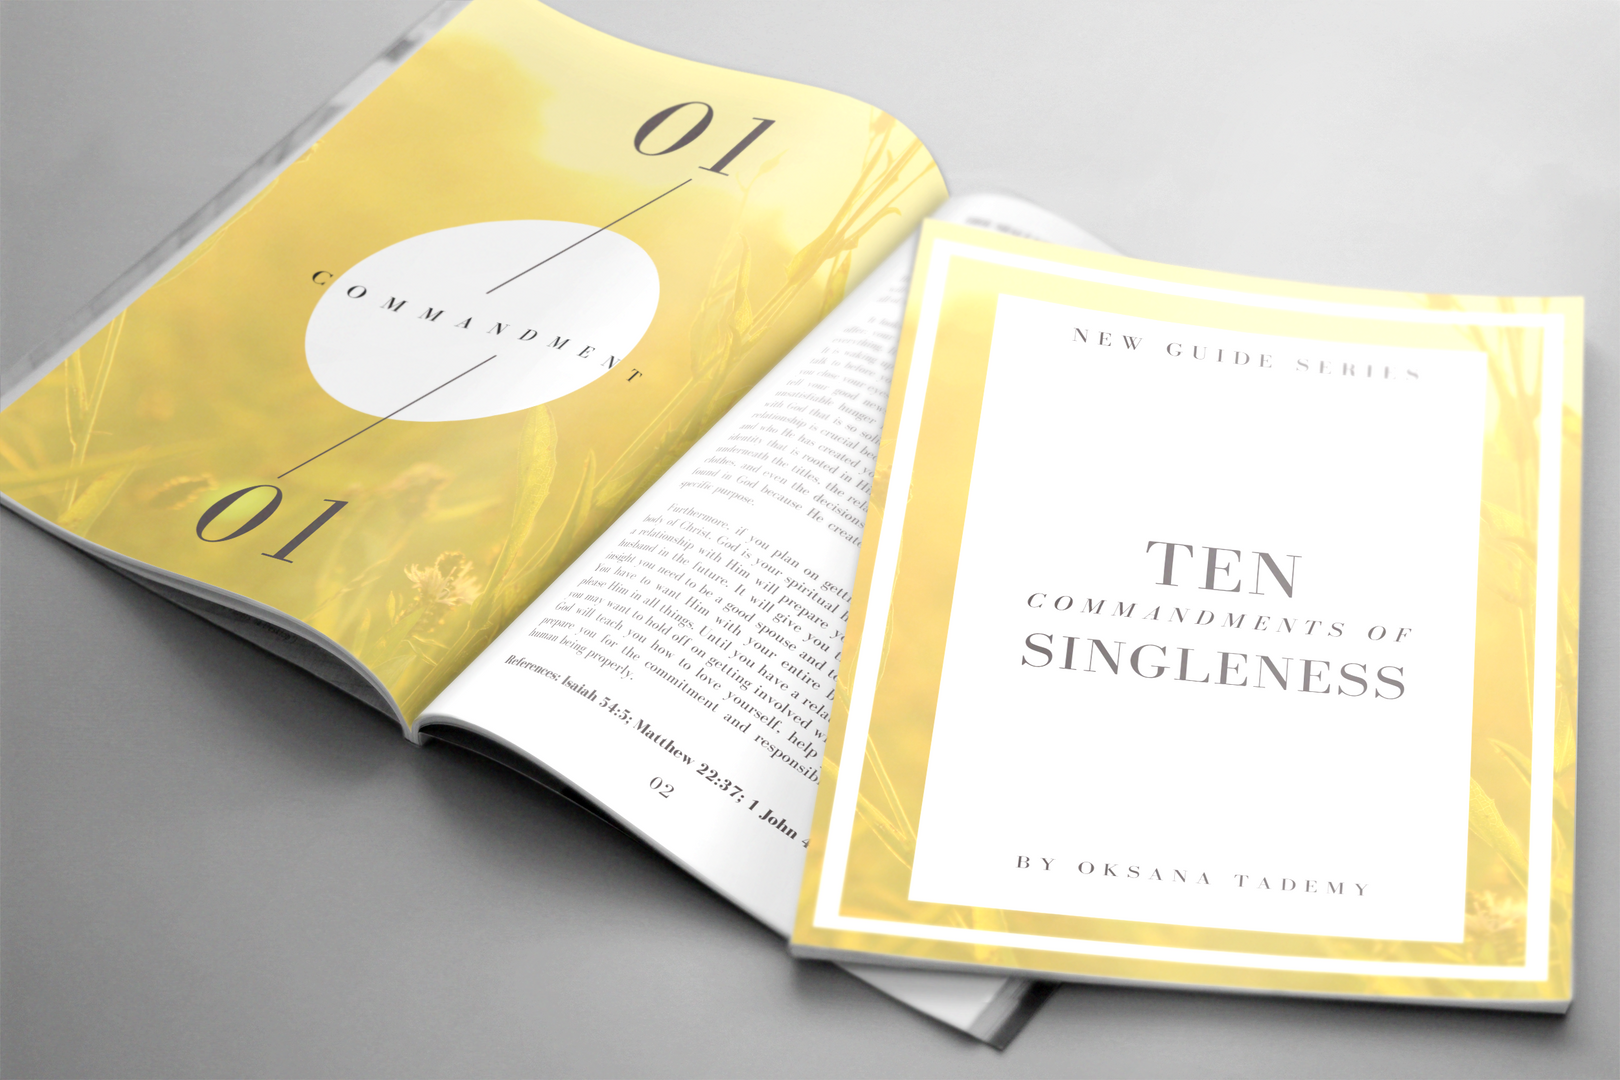 Ten Commandments of Singleness